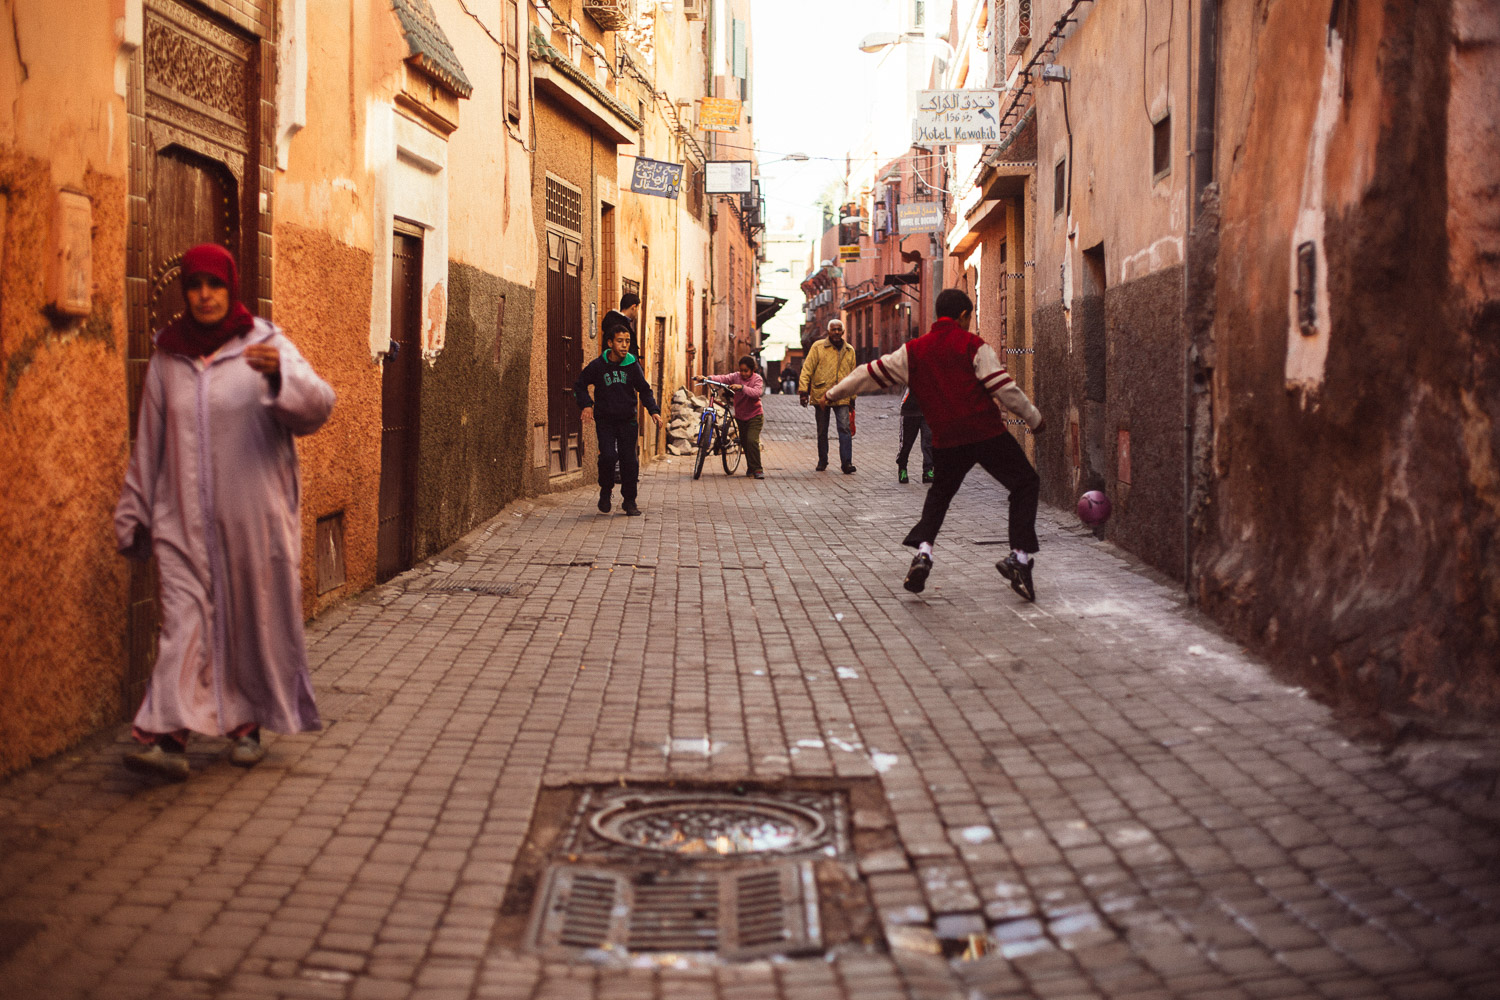 Lost in time in a back-alley in Marrakech, Morocco.